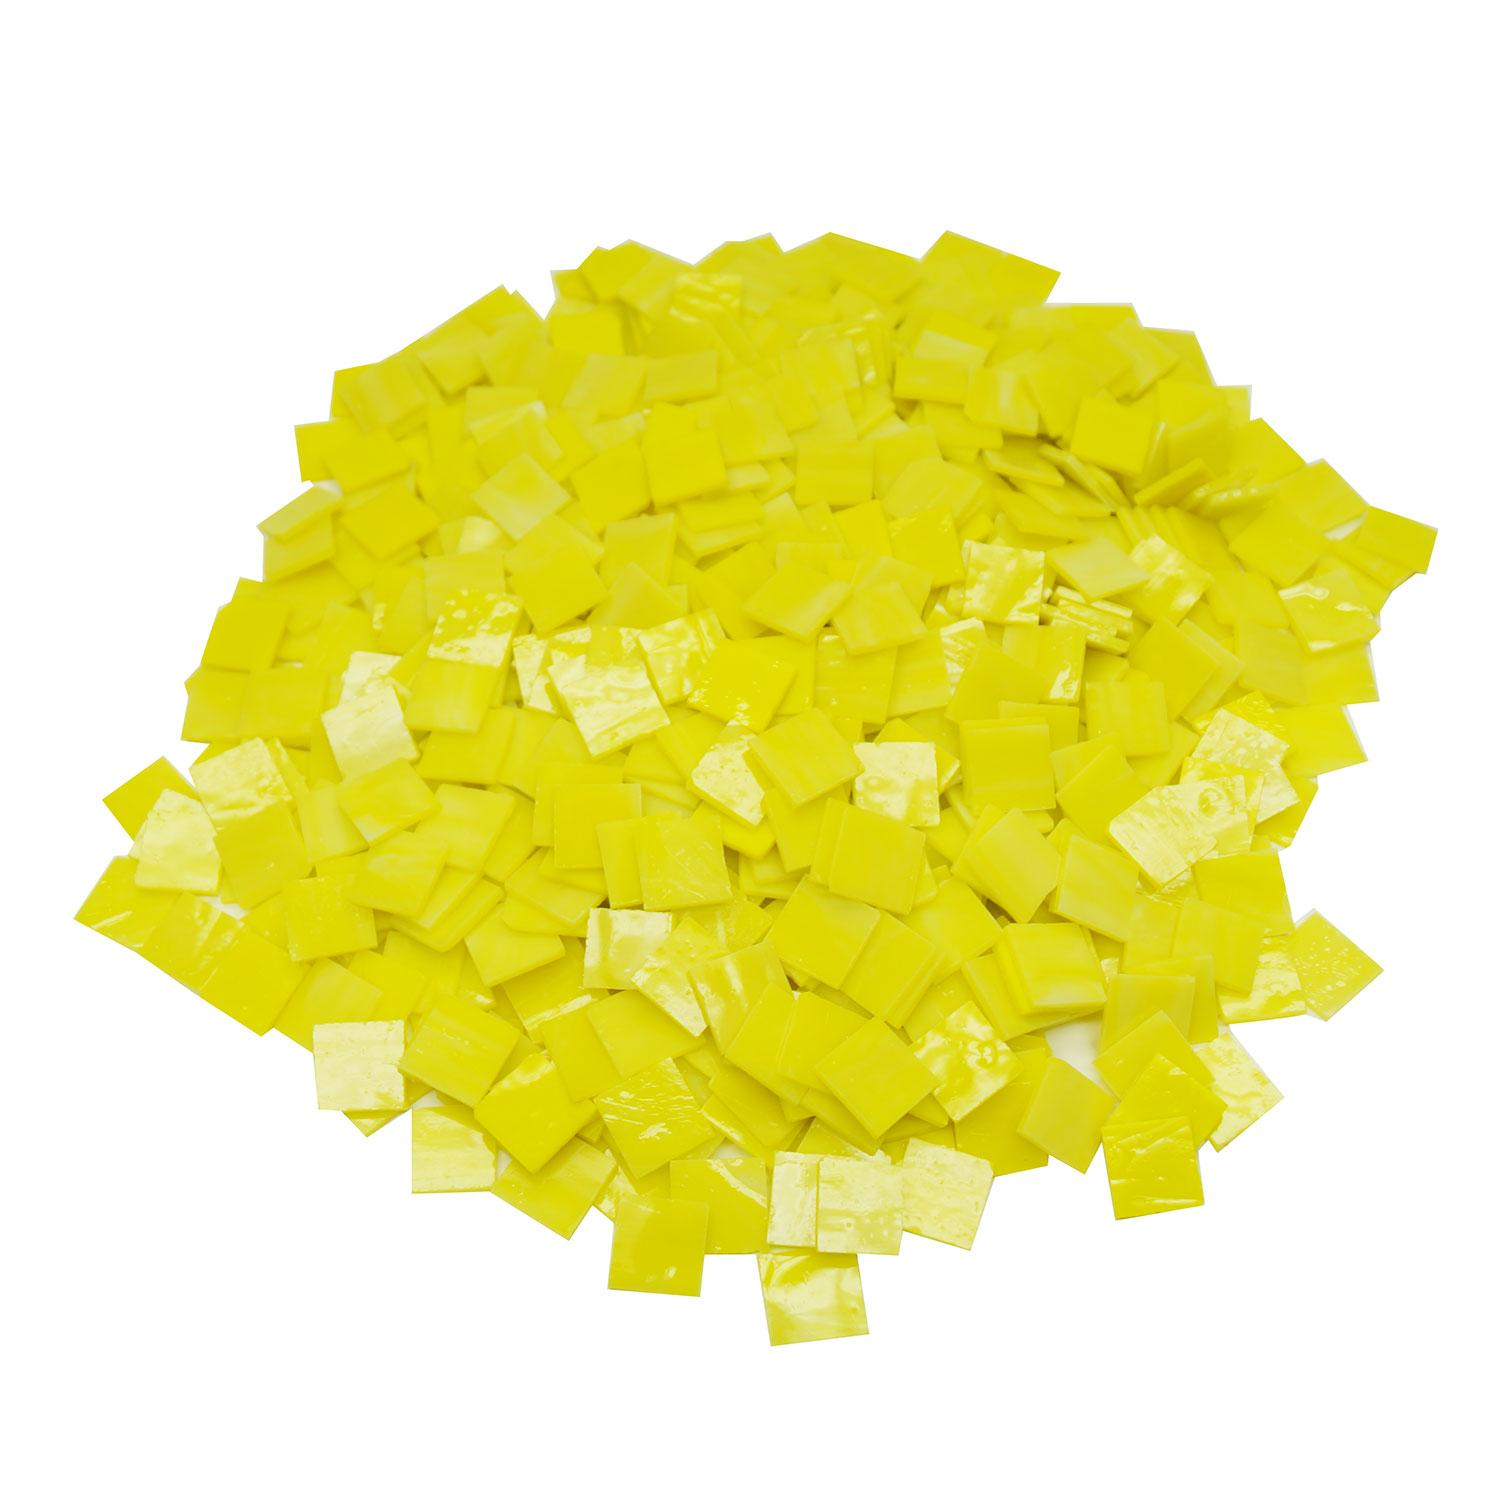 3/4 Yellow Opalescent Stained Glass Chips - 700 Pieces